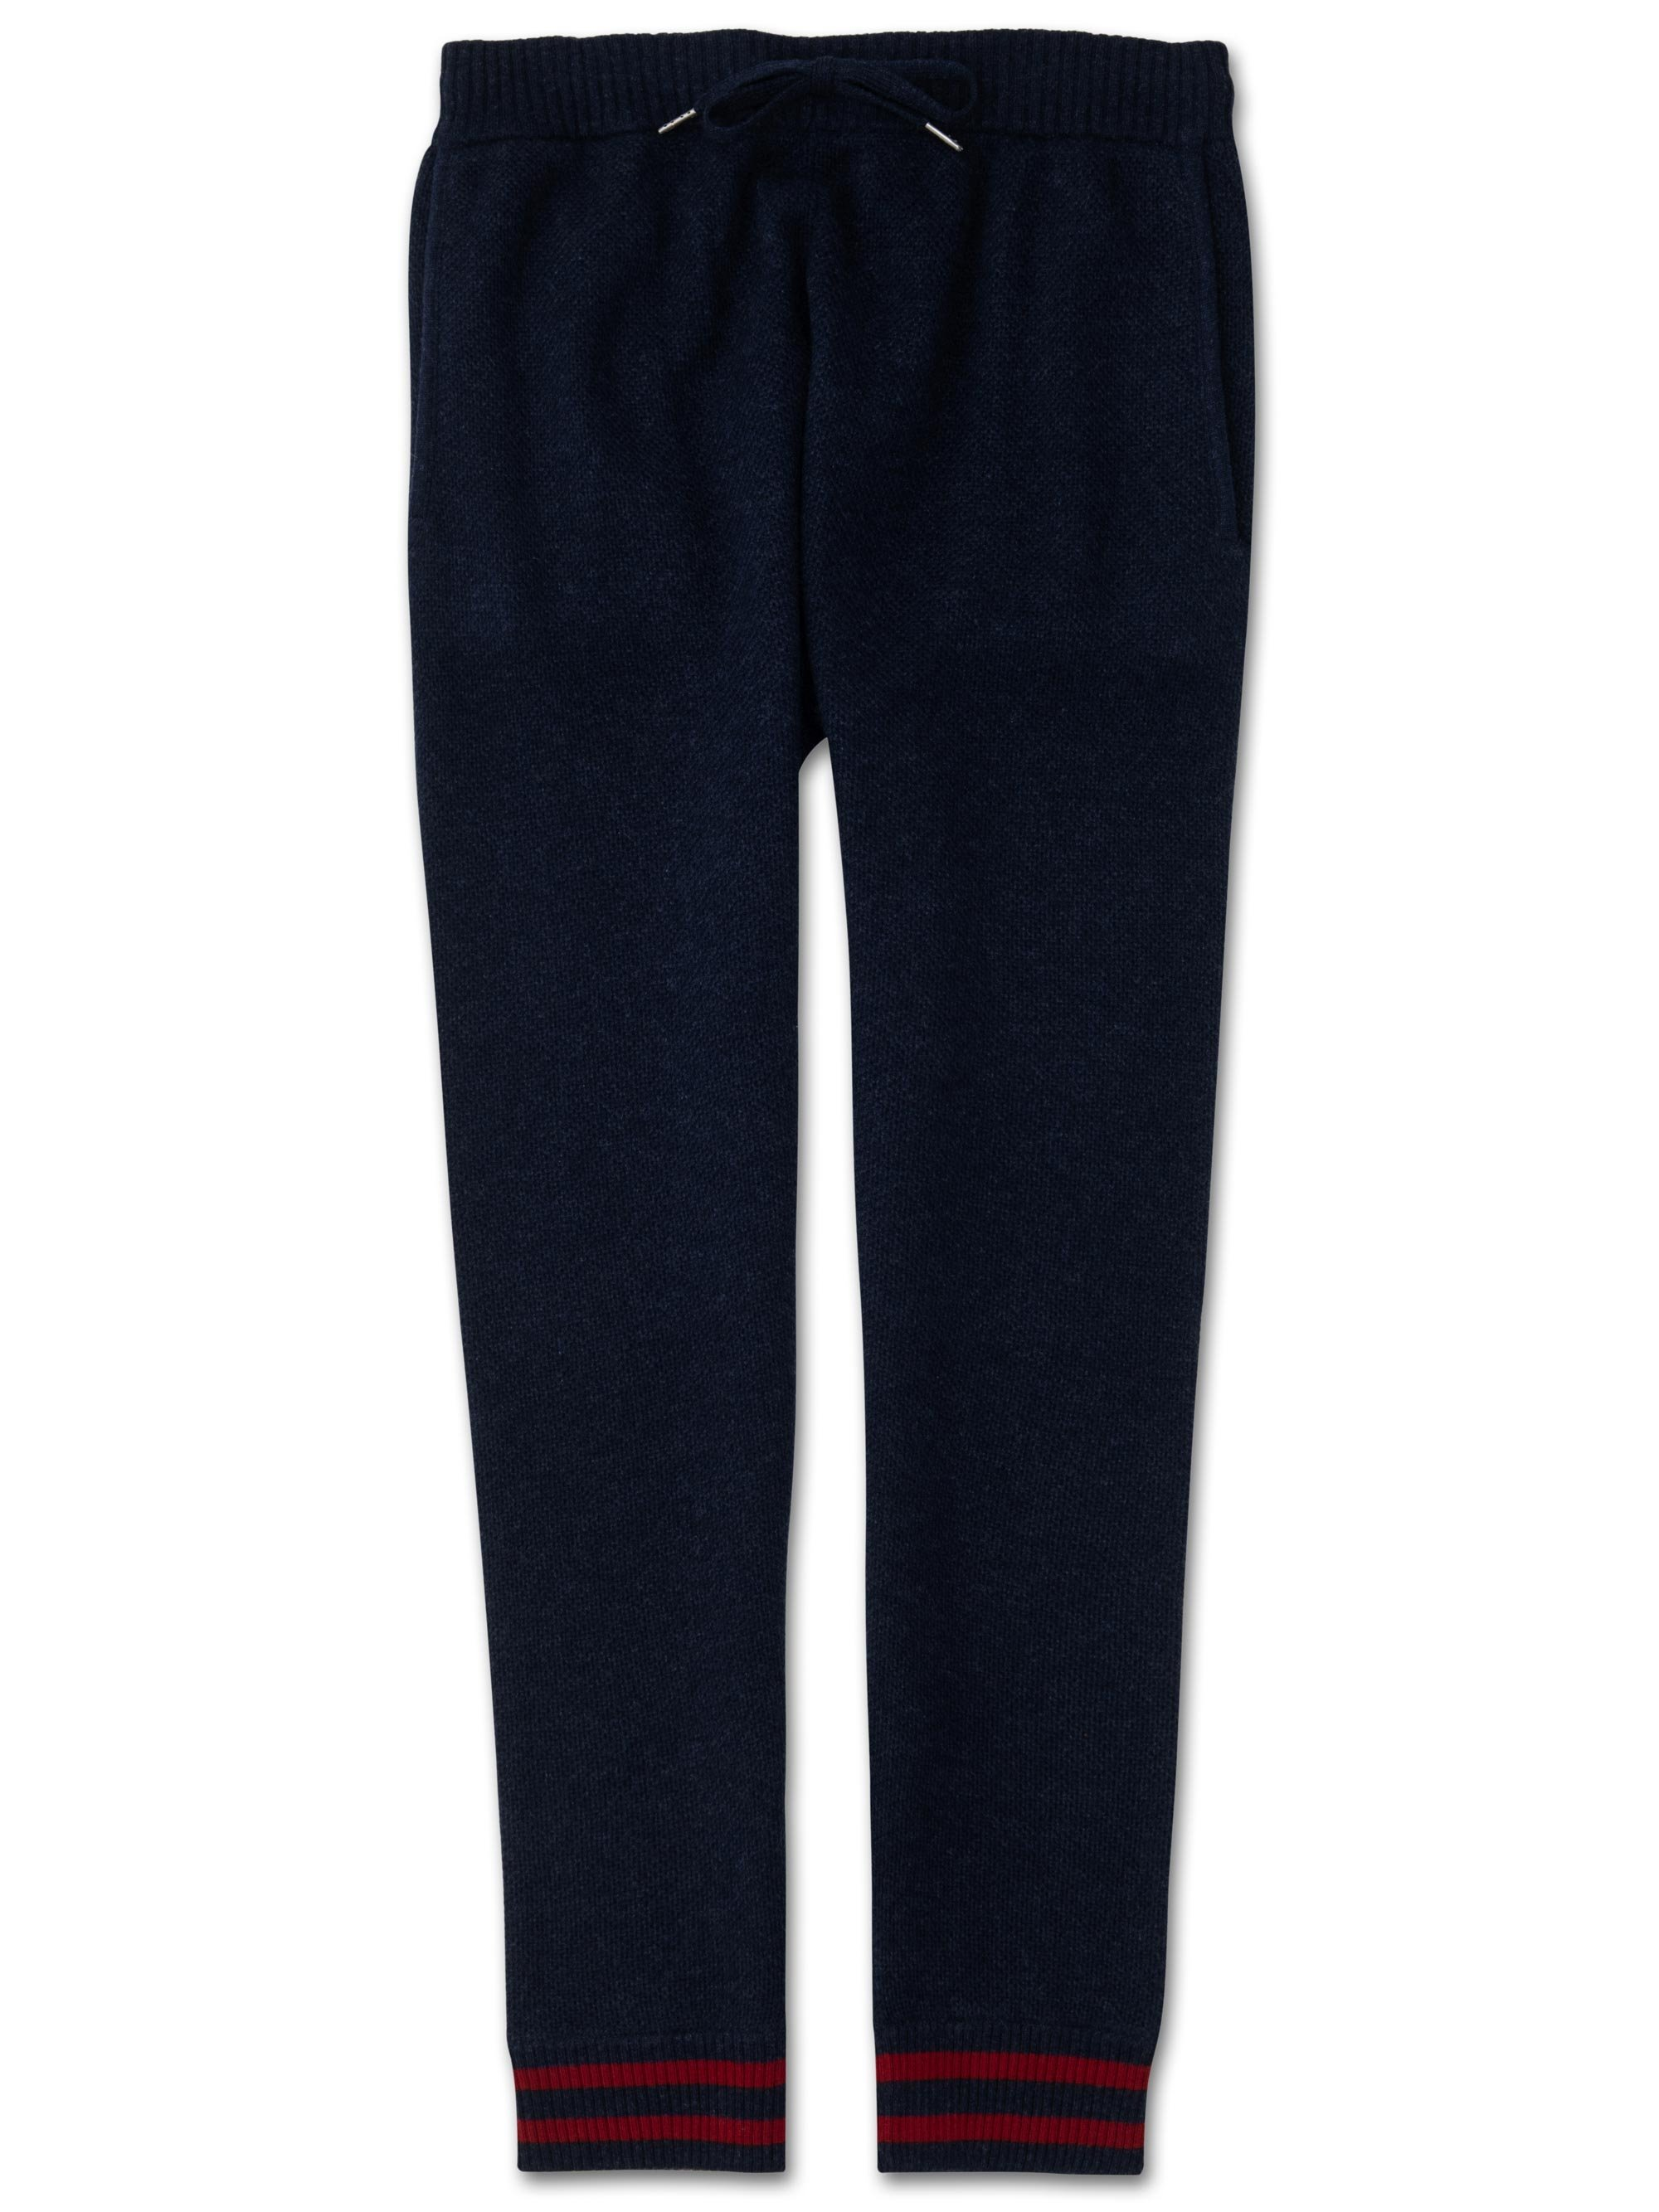 Men's Cashmere Track Pants Felix 2 Pure Cashmere Midnight